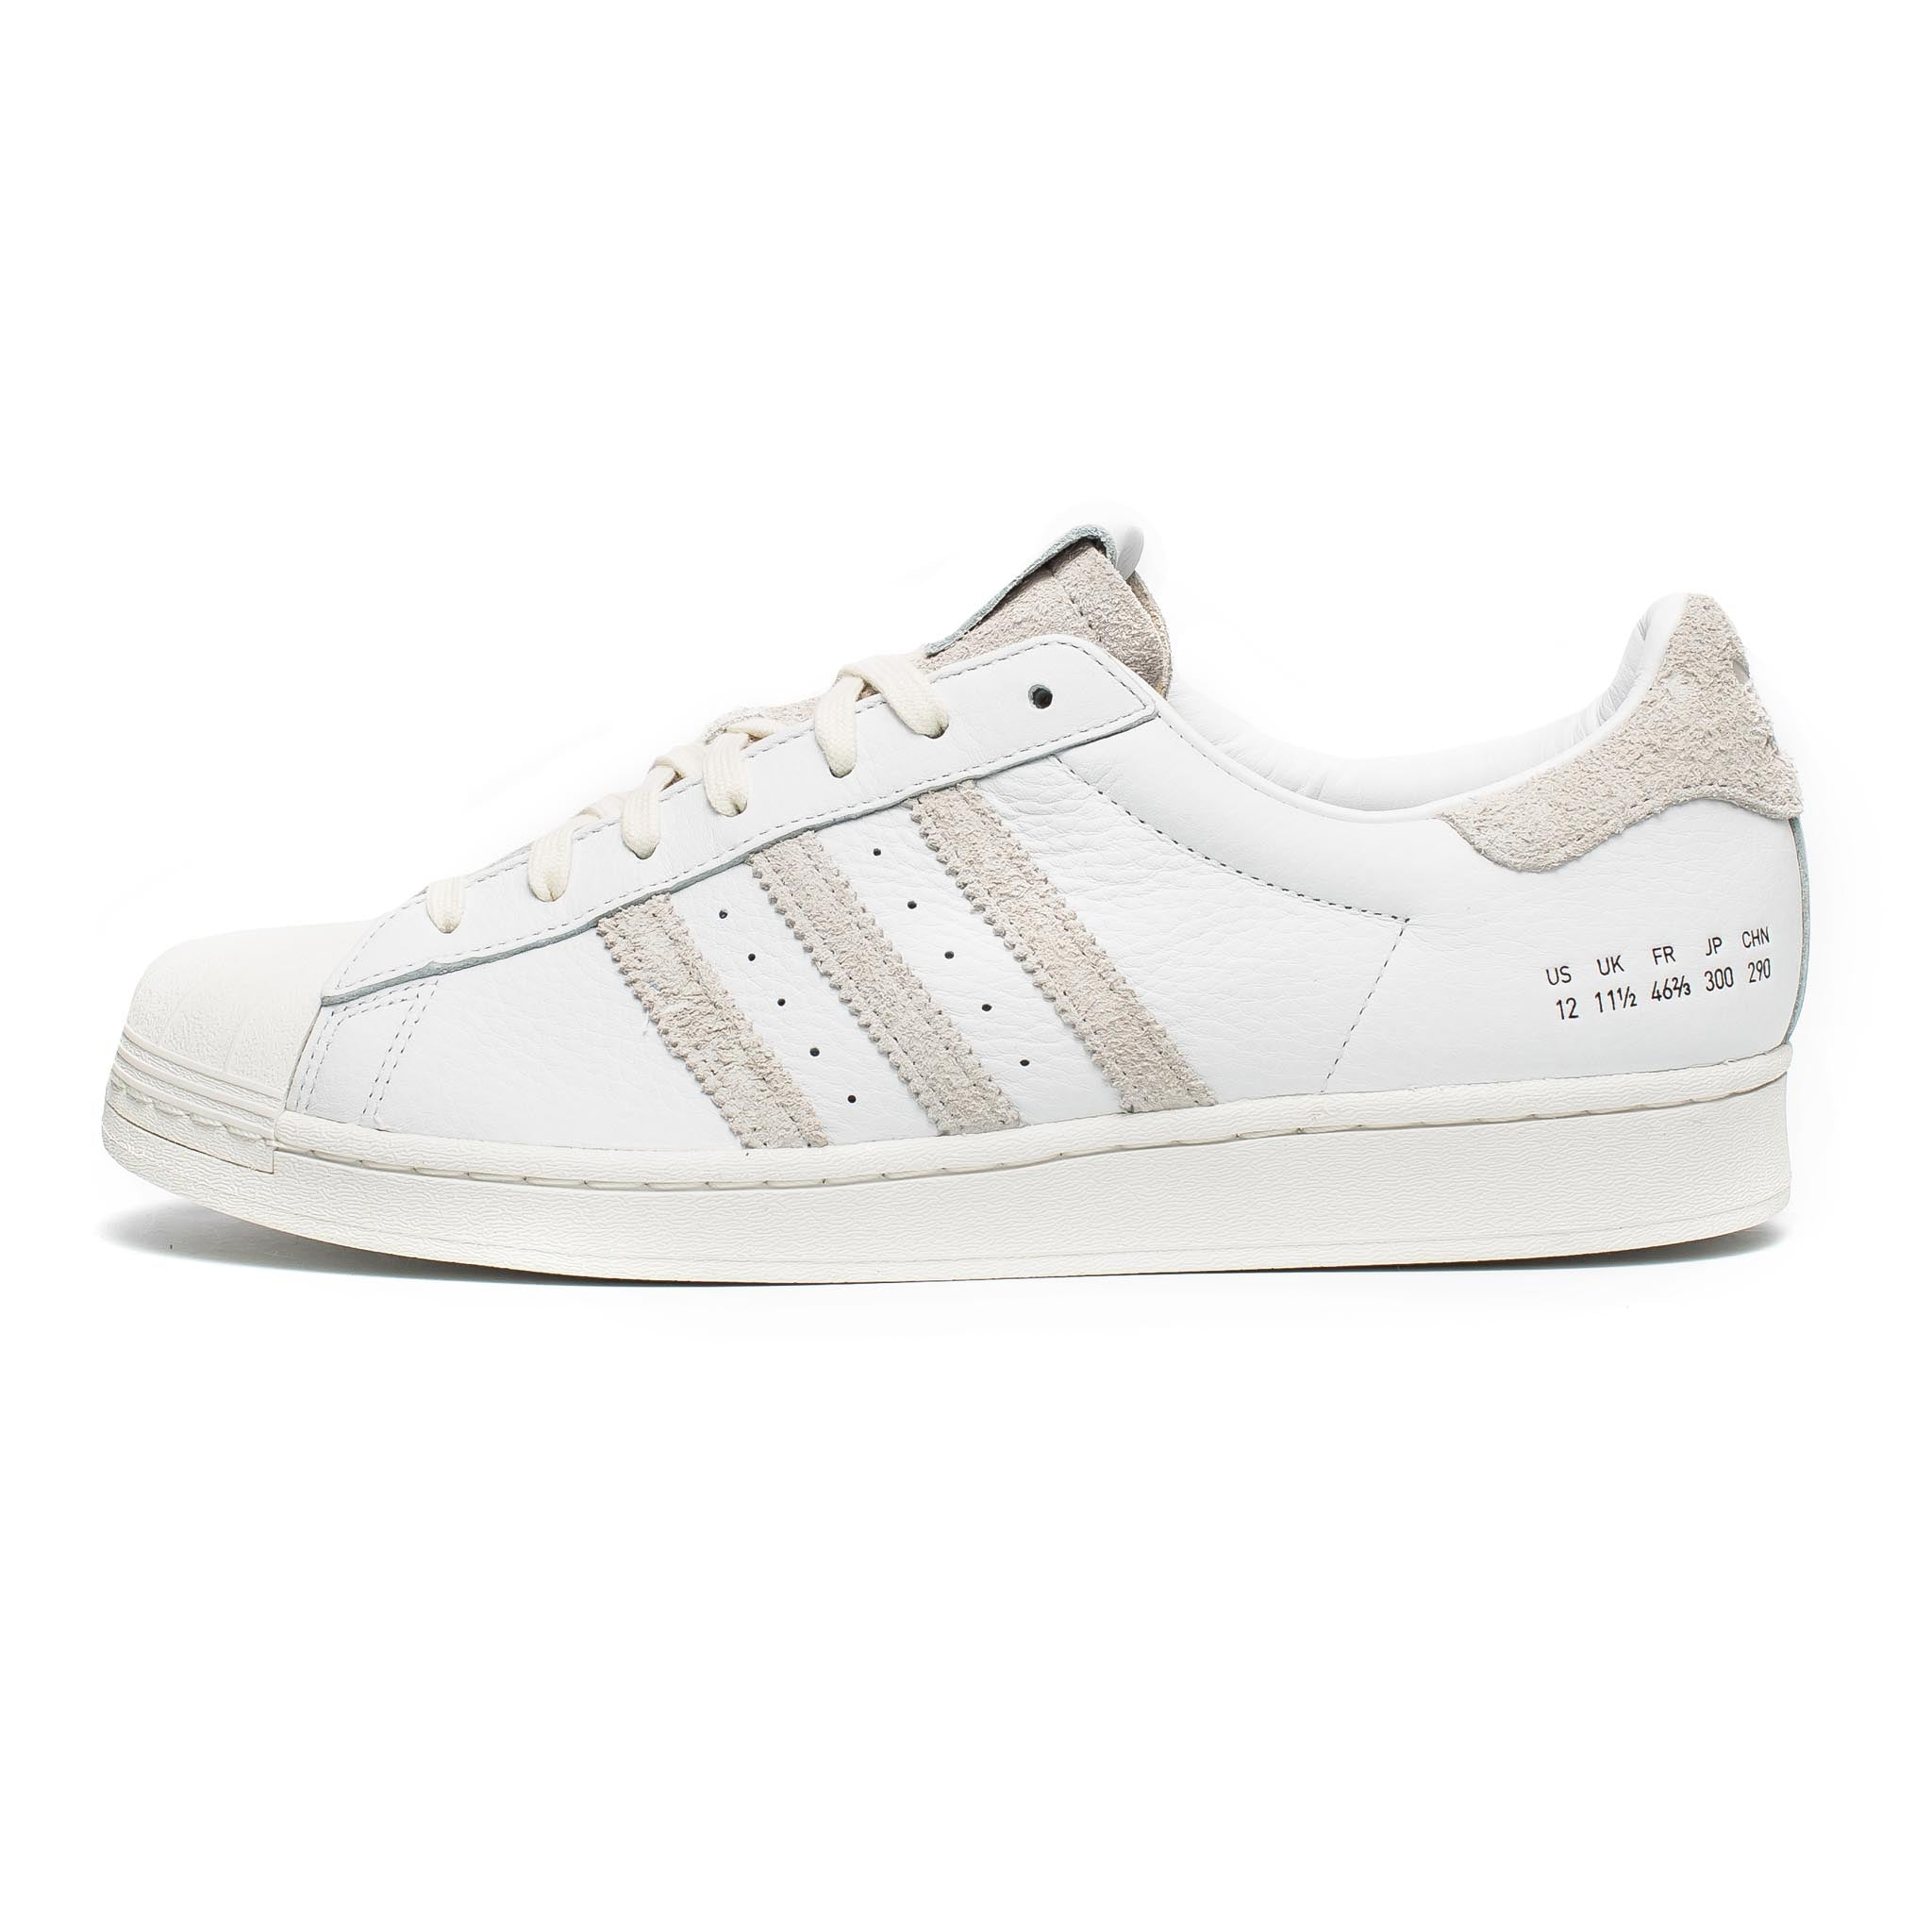 ADIDAS Superstar Cloud White/Crystal White